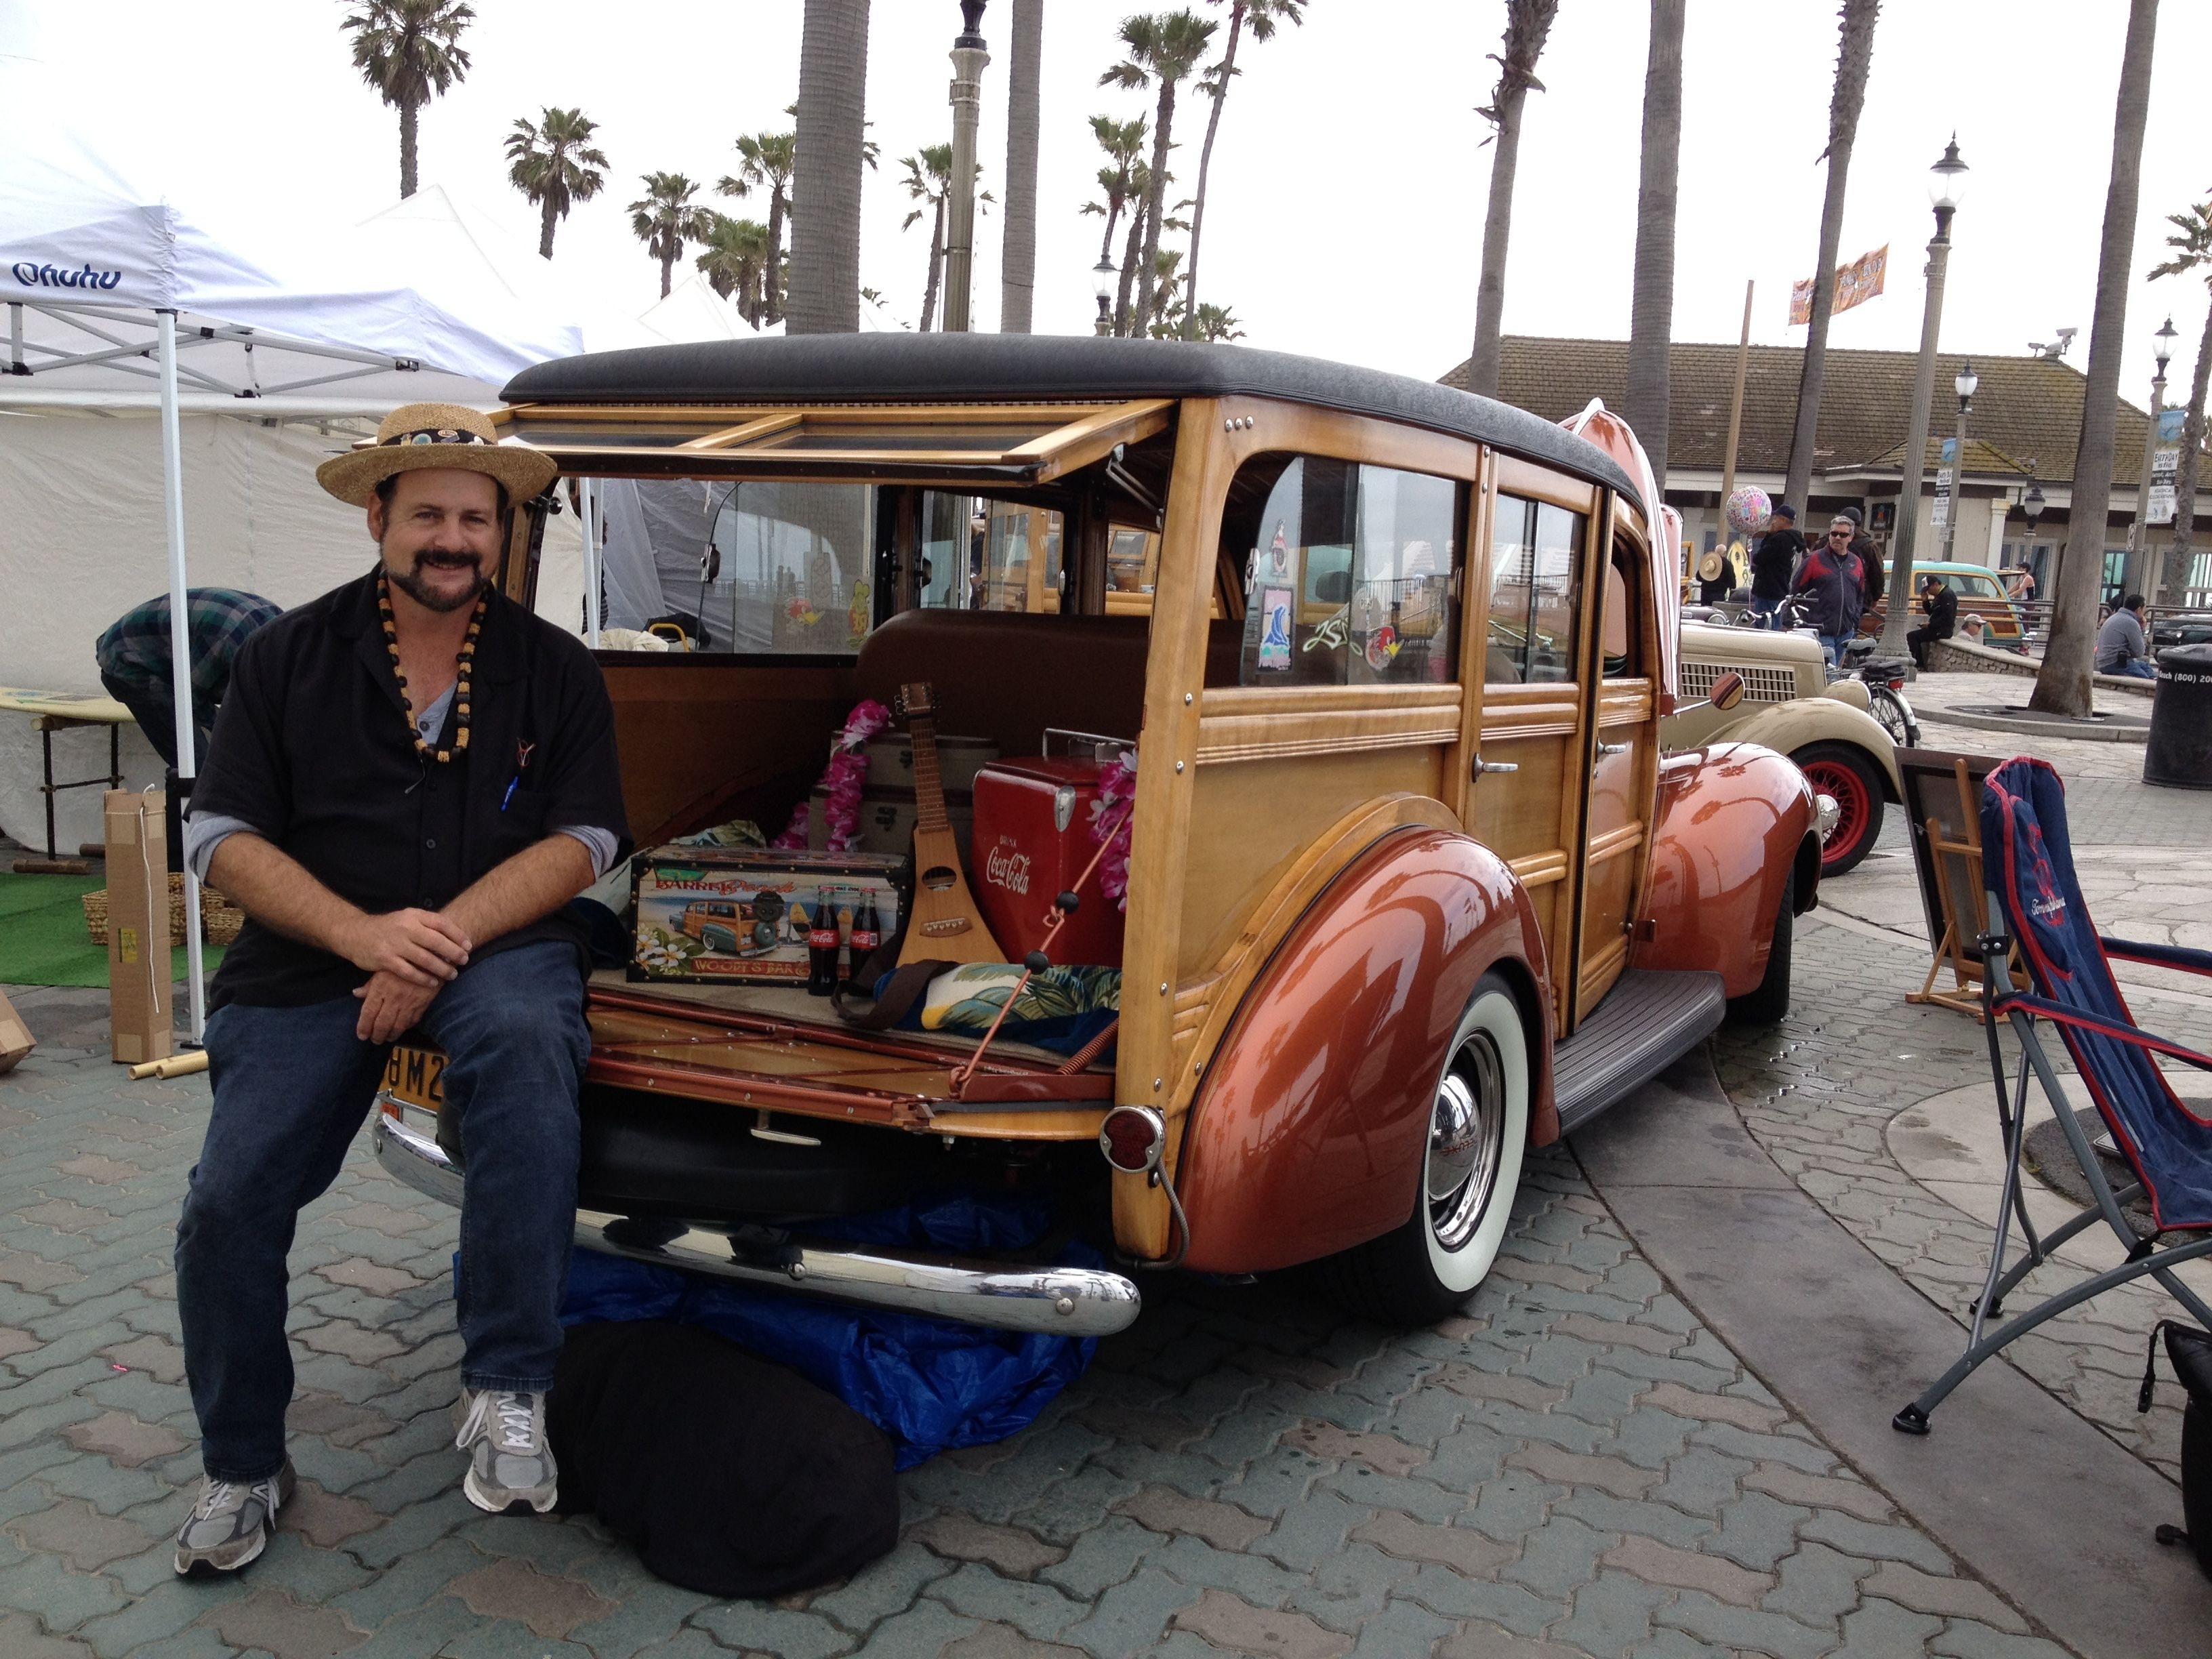 Greg and Shelly s 1940 Ford Deluxe Huntington Beach Pier Plaza Art a